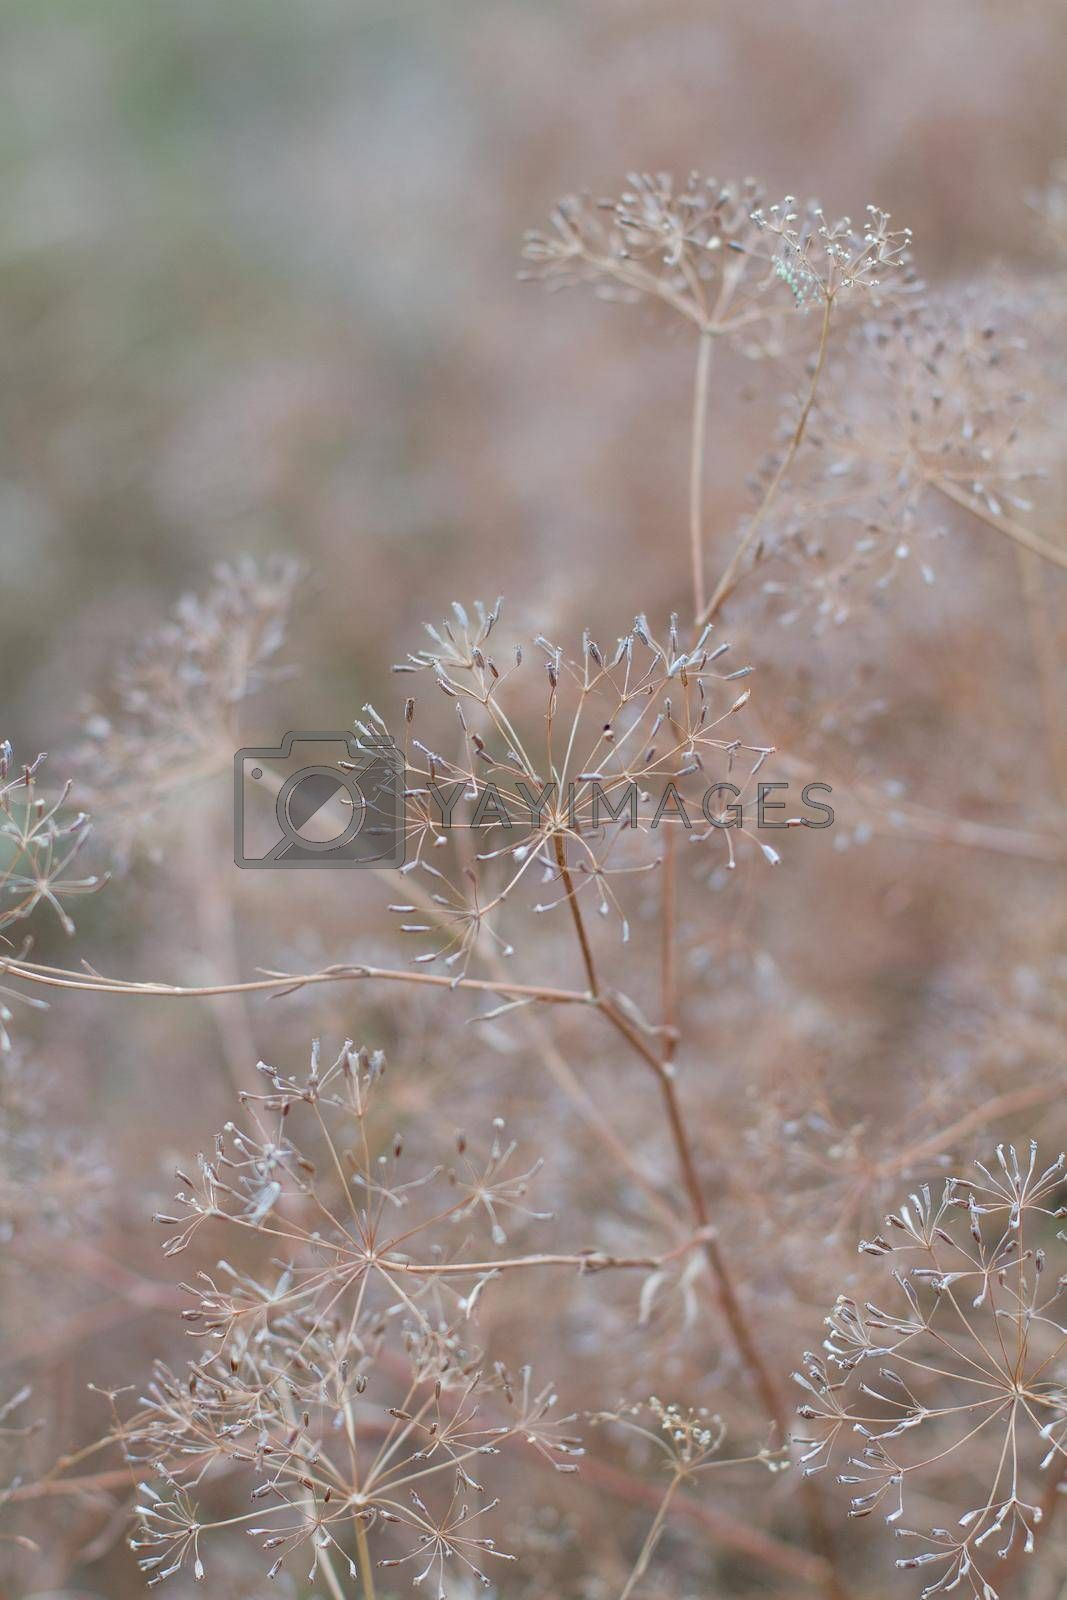 Royalty free image of Closeup of dill umbrellas. Dill growing on the field background. Dry fennel umbrellas with seeds.  Shallow depth of field. by Jannetta